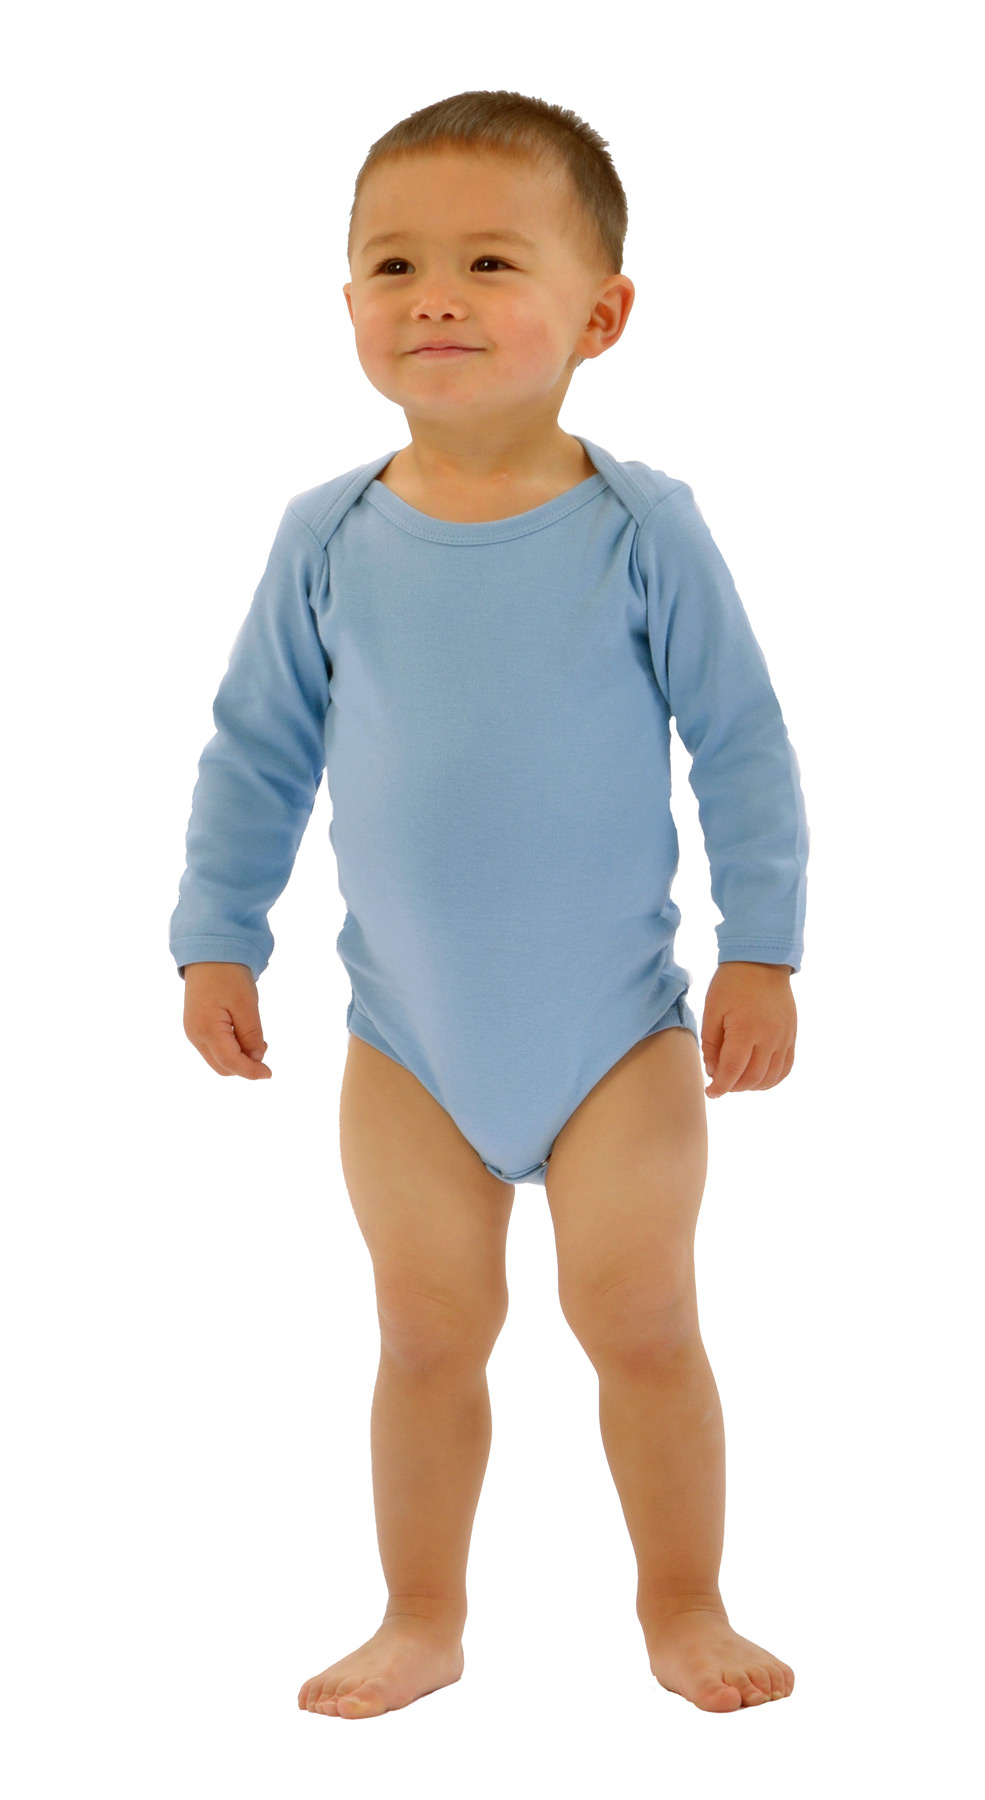 Monag 100030 - Interlock Long Sleeve One-Piece